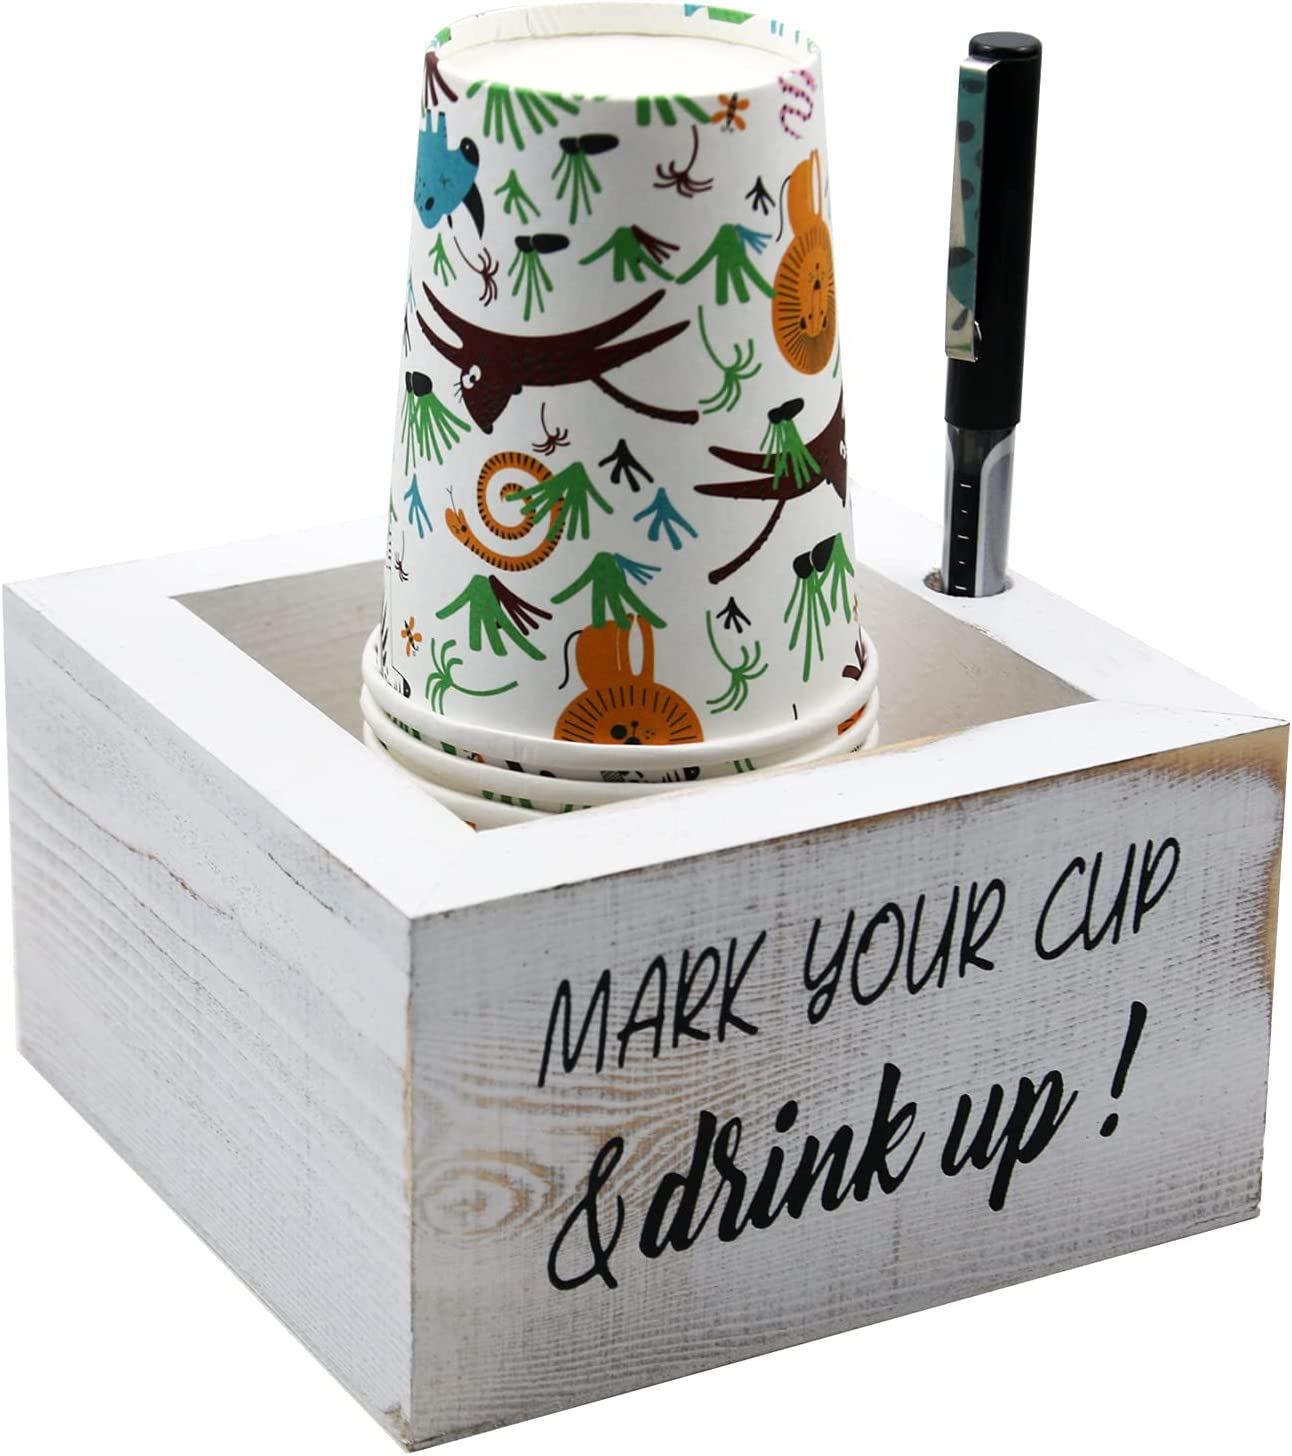 Clearance SALE Limited time Solo Cup Holder Mark Your and Drink Choice Bathroom Dis Wood Up